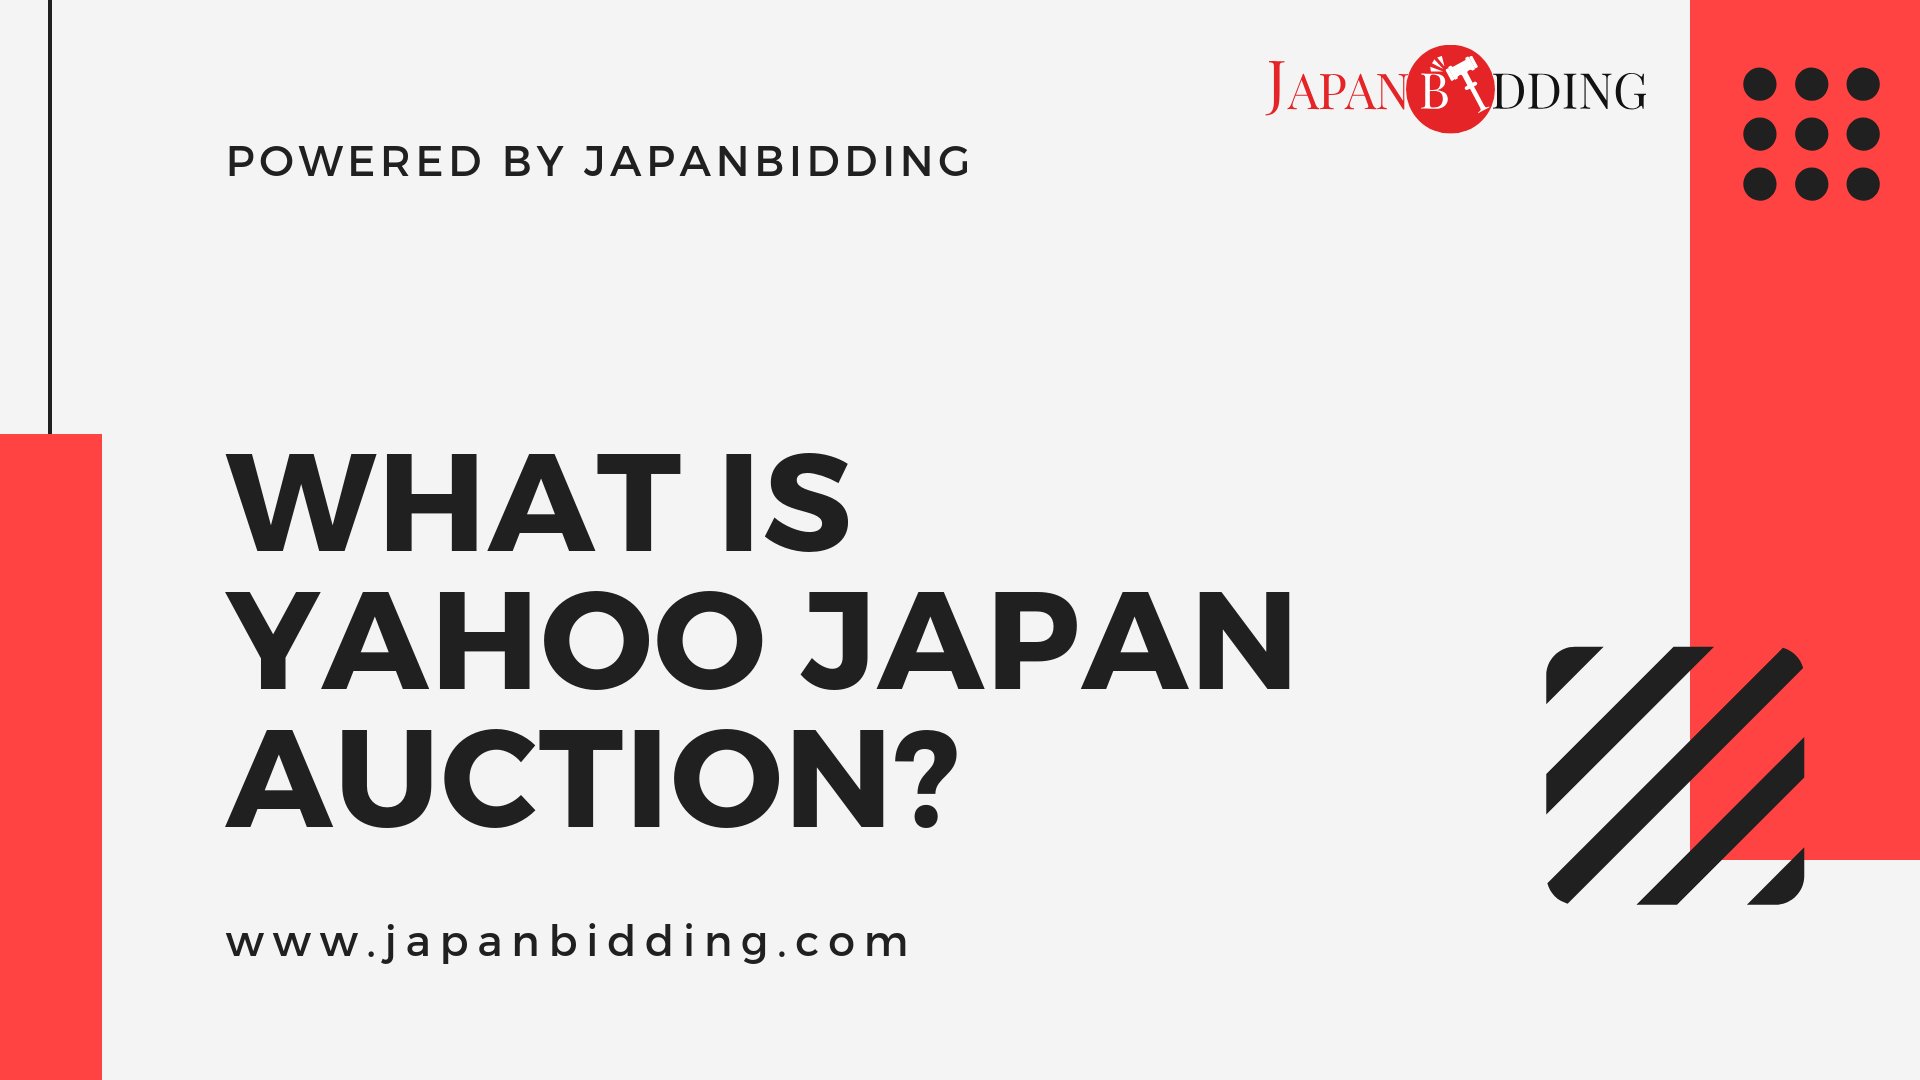 What is Yahoo Japan Auction?